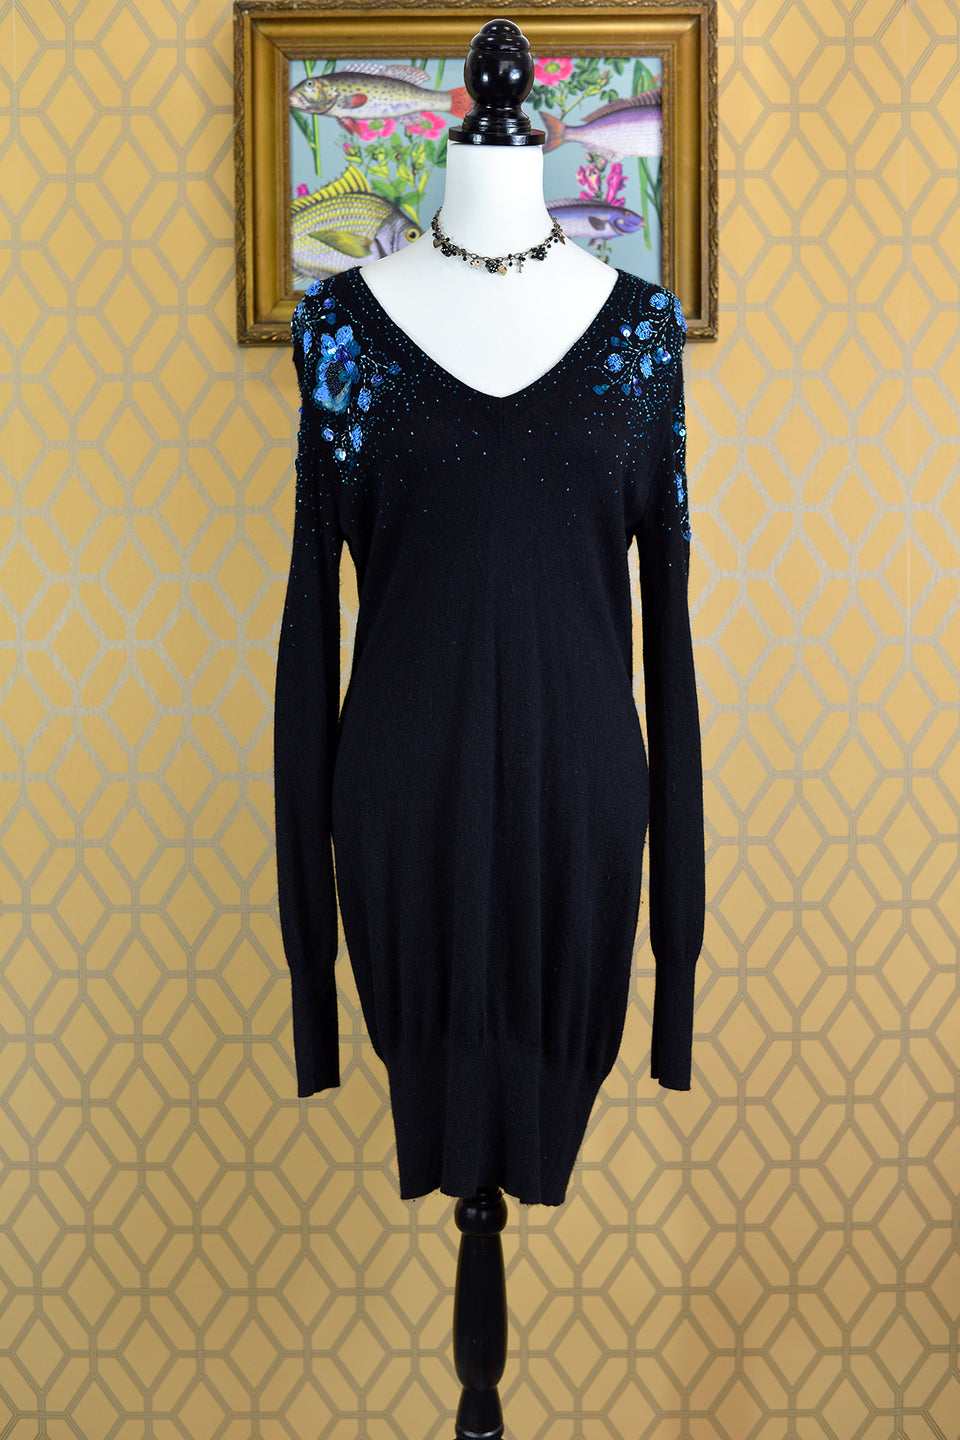 WHISTLES Women's Black Jumper Dress with Blue Floral Beading, Size 6/8. Pre-loved.